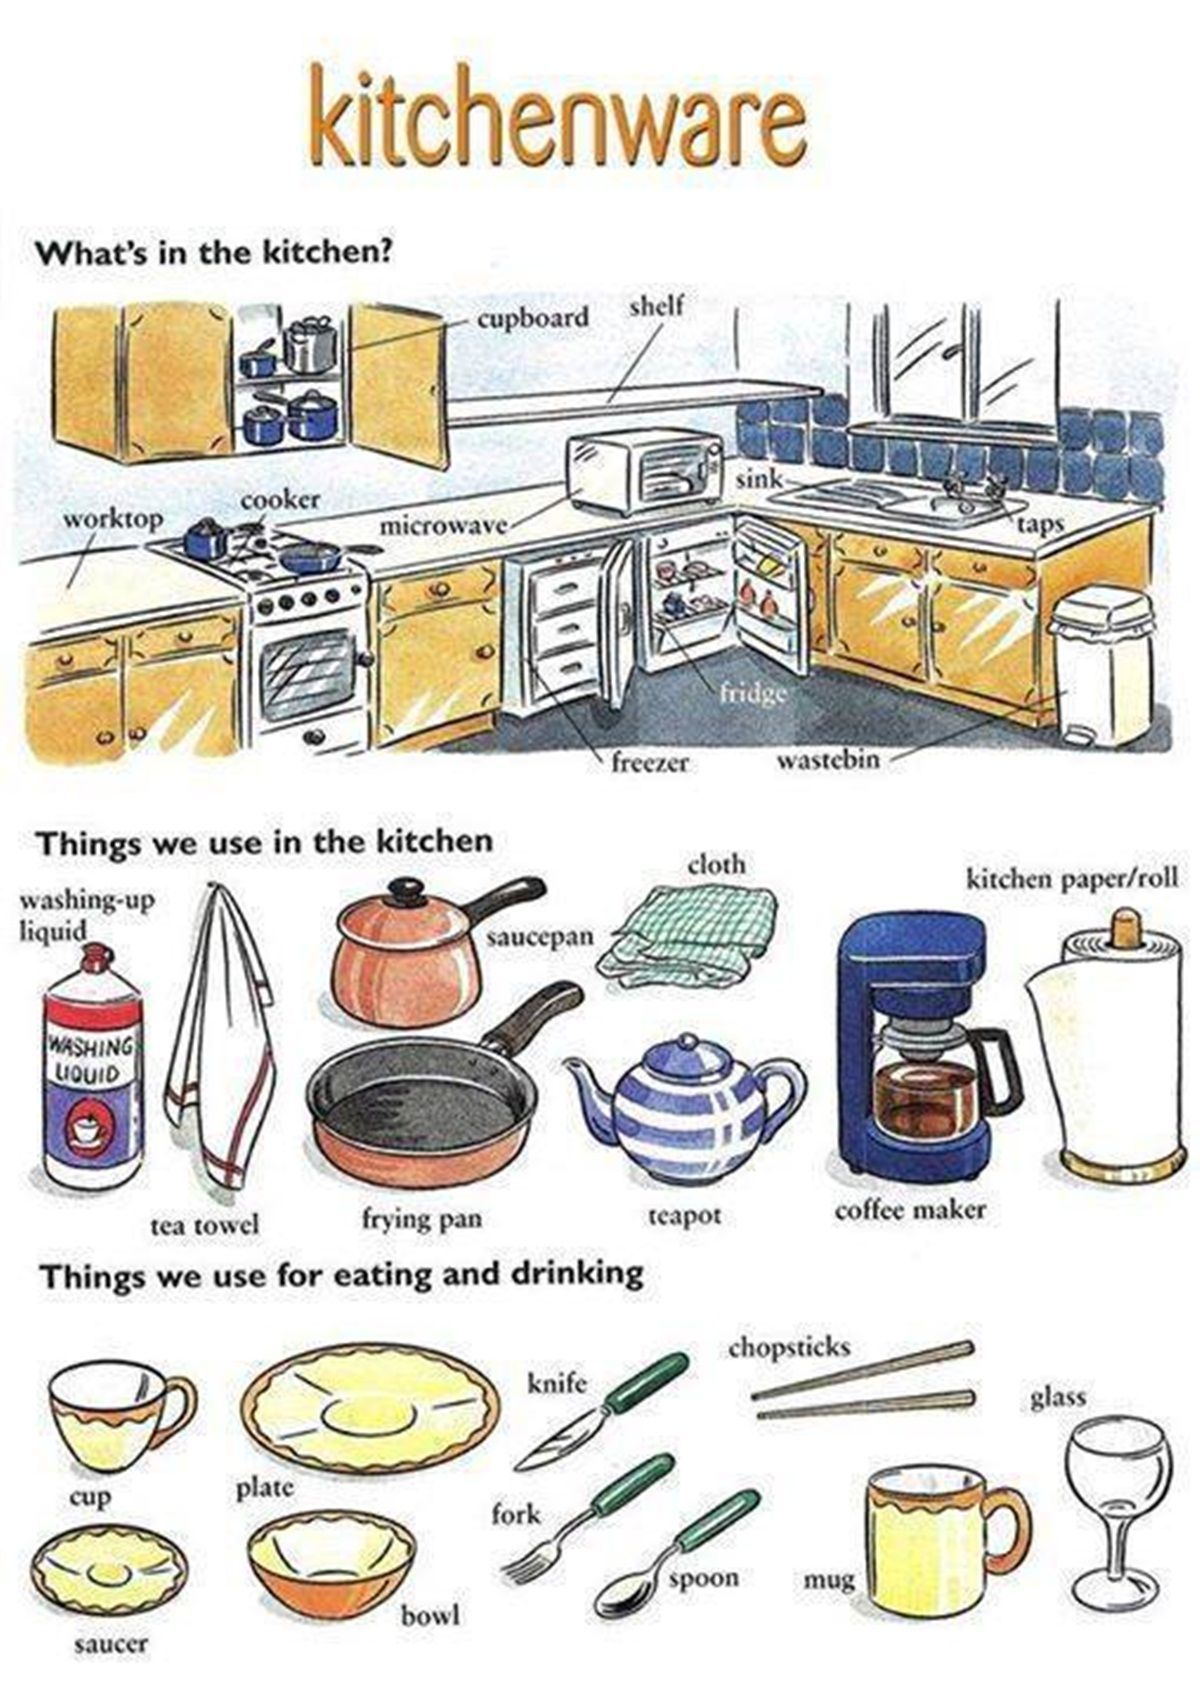 In the Kitchen\